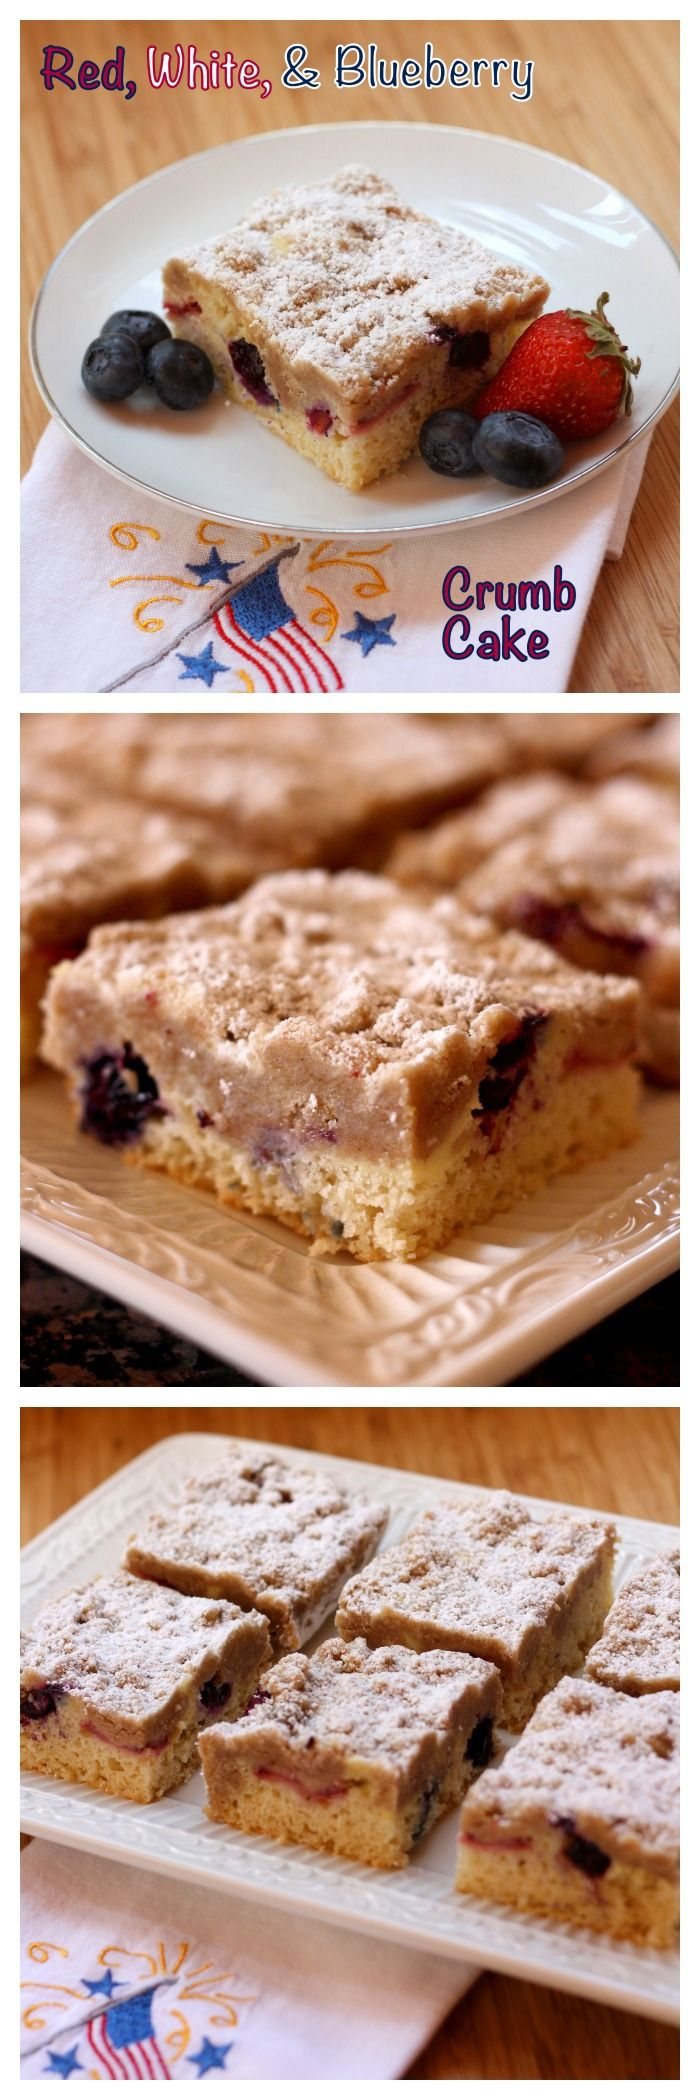 Red, White Blueberry Crumb Cake - the ultimate New York-style coffee cake filled with a berry and cheesecake filling. Perfect for breakfast, brunch or dessert | cupcakesandkalechips.com